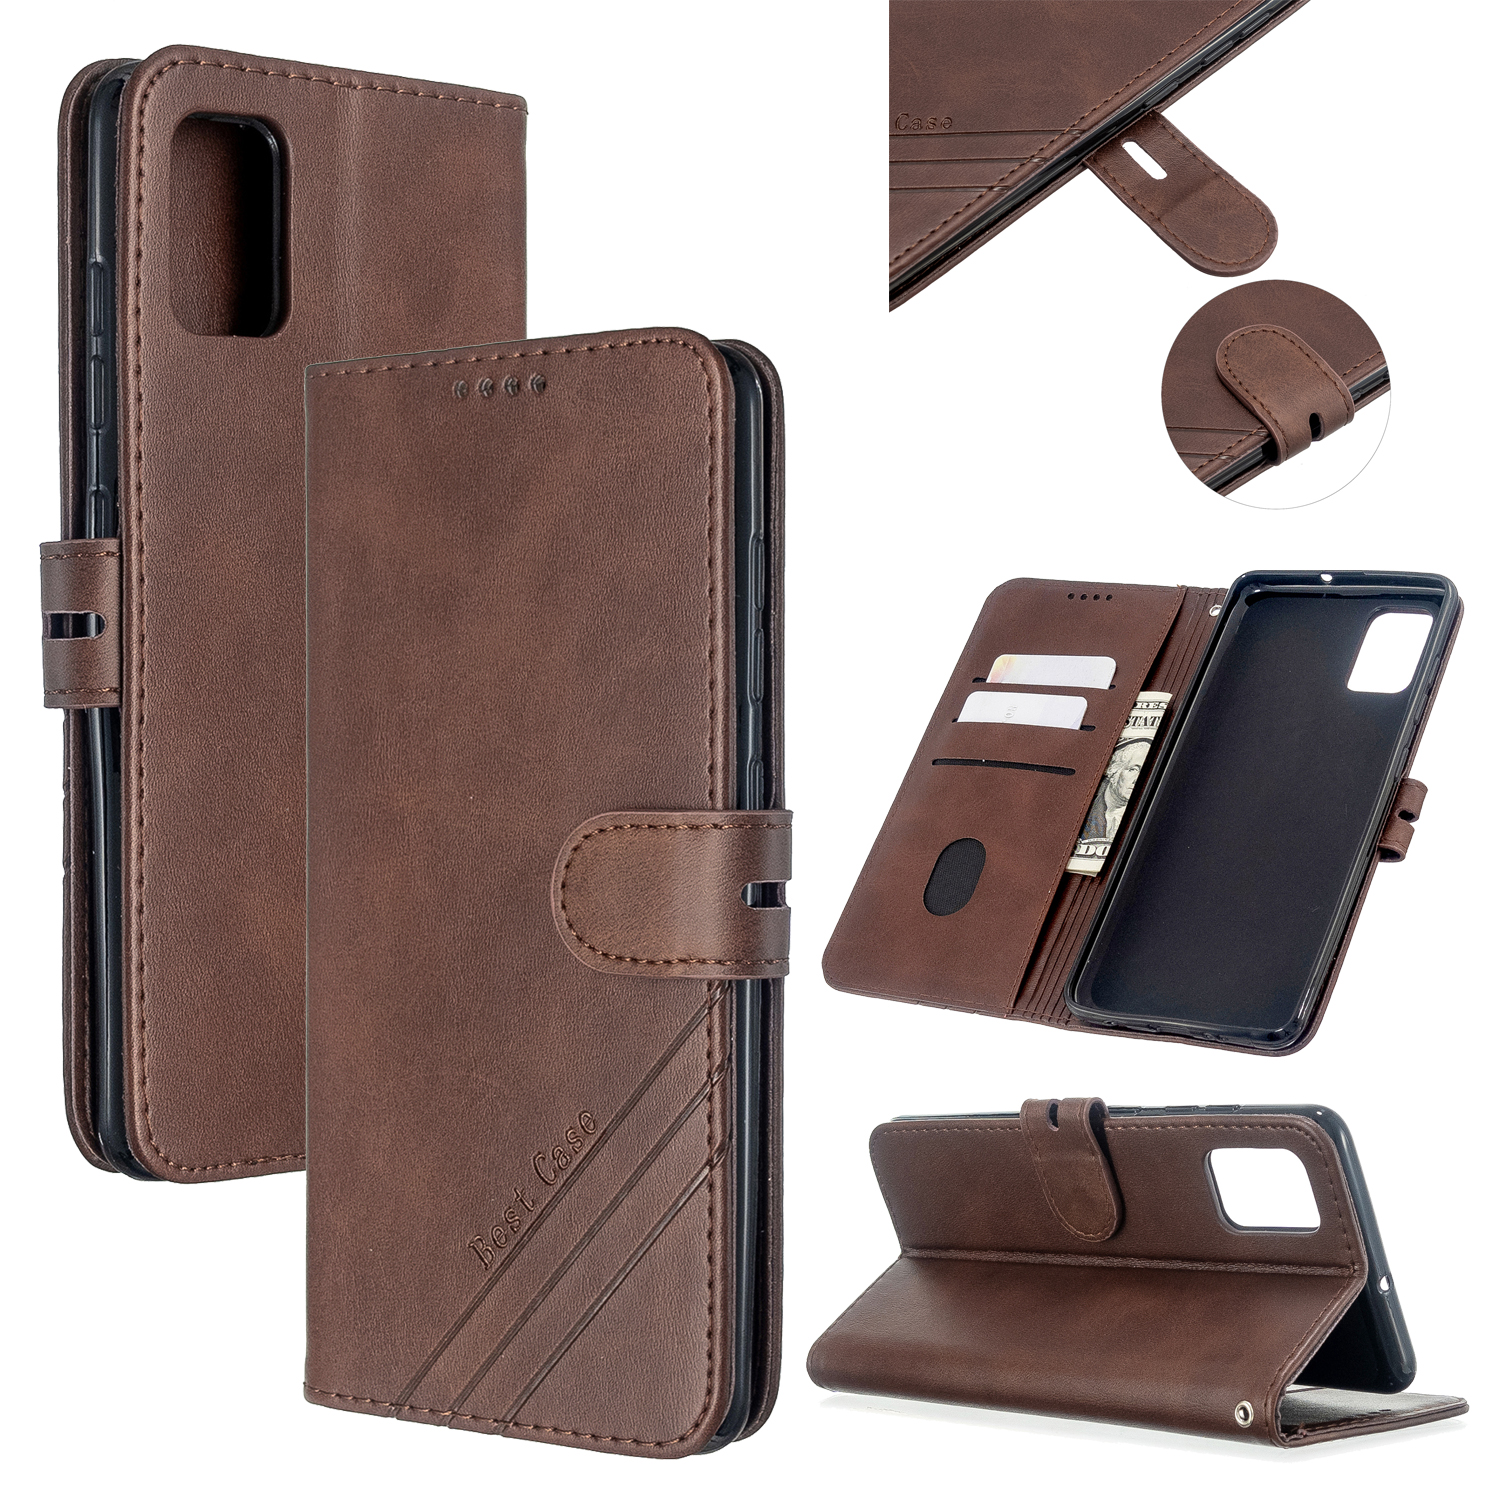 For Samsung A51/A71/M30S Case Soft Leather Cover with Denim Texture Precise Cutouts Wallet Design Buckle Closure Smartphone Shell  brown